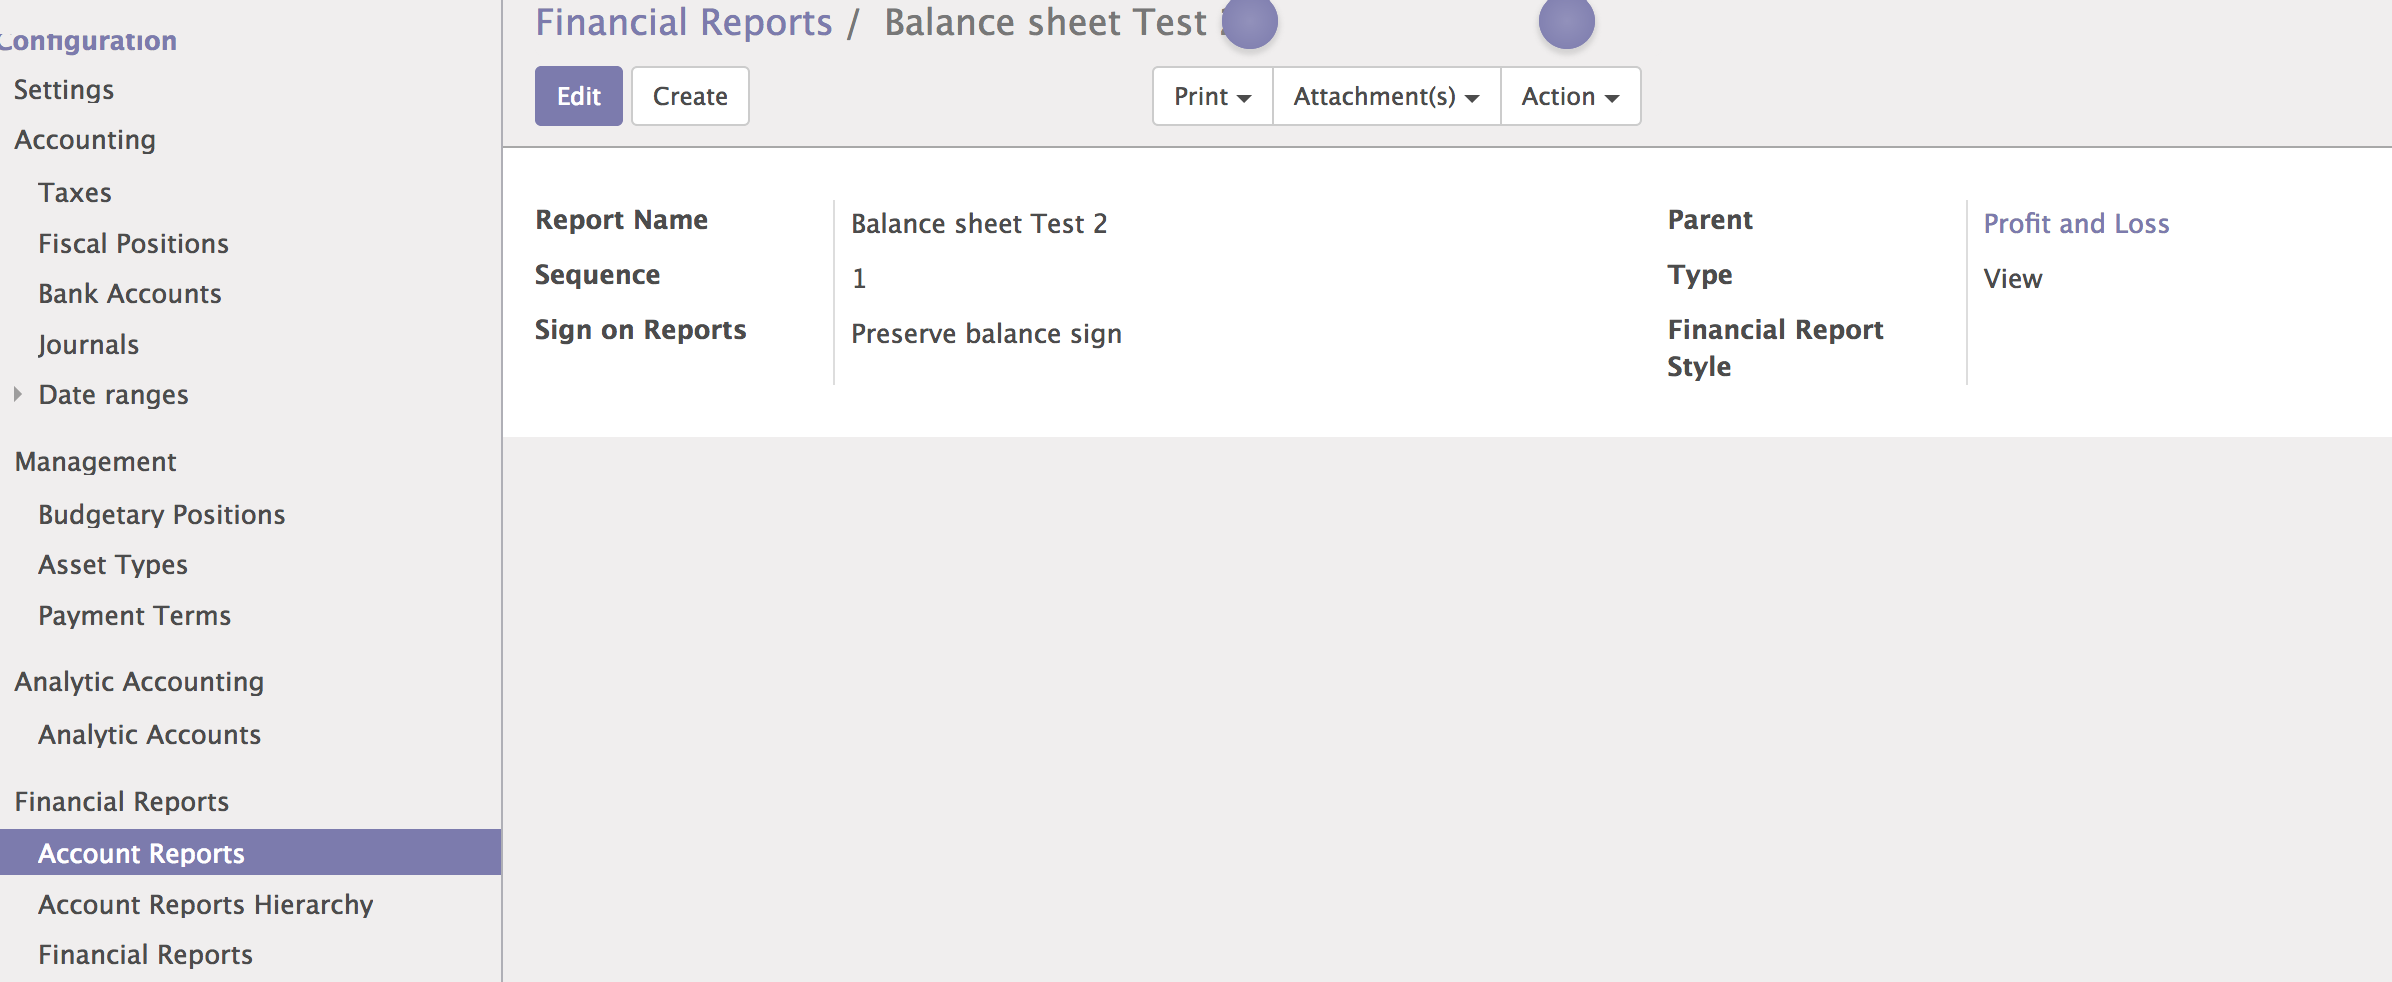 10 0] Error when printing financial reports · Issue #16515